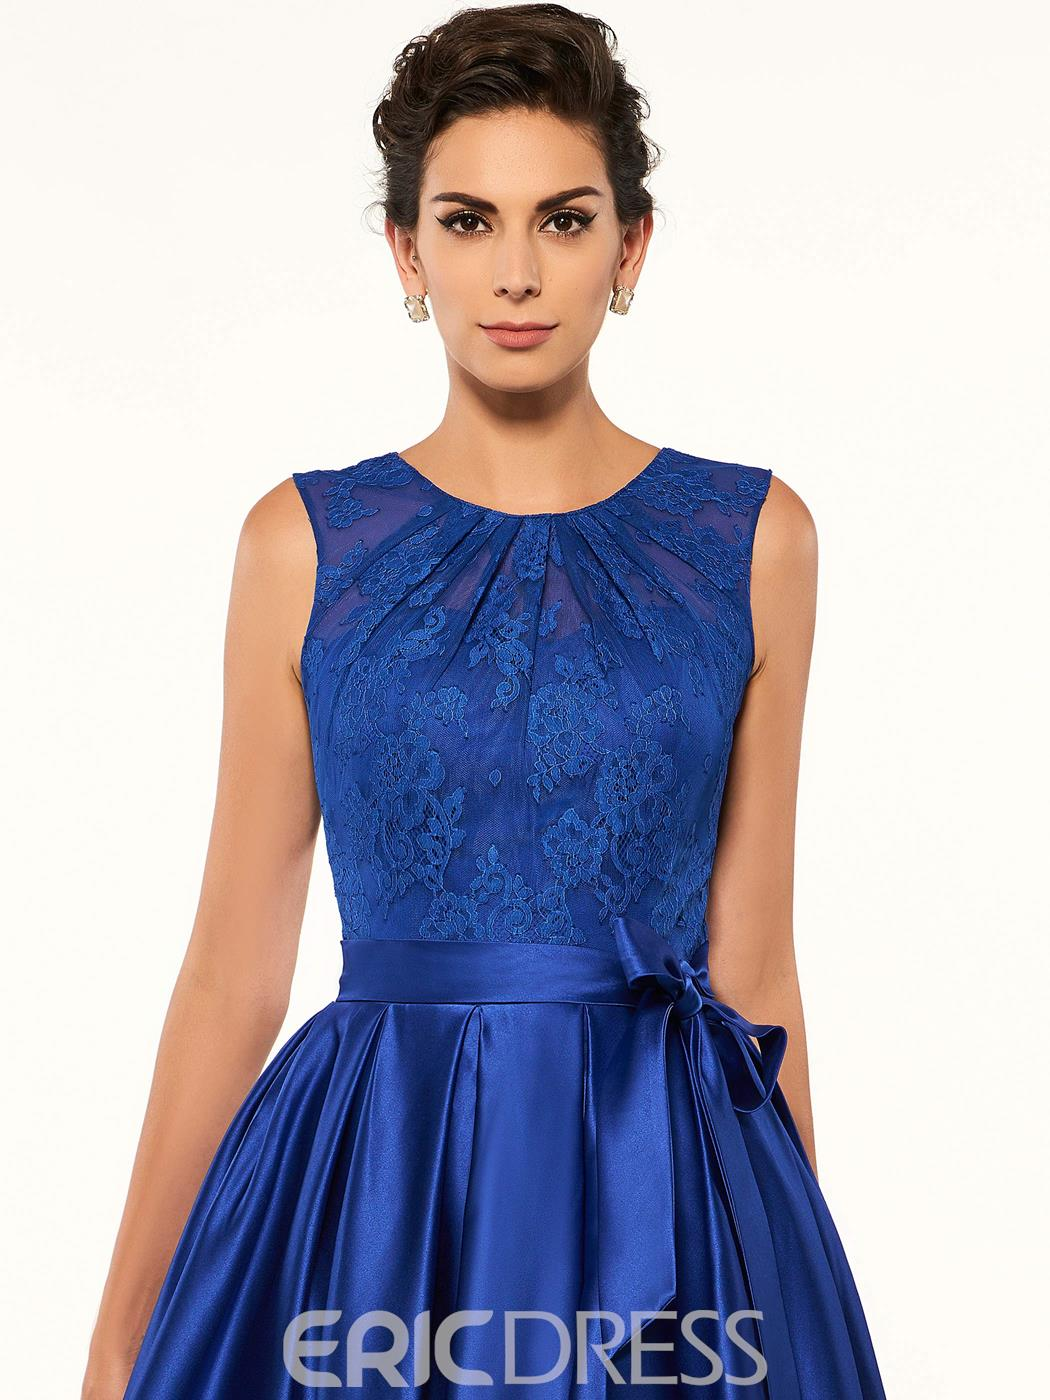 Ericdress Fancy Jewel Lace High Low A Line Mother Of The Bride Dress